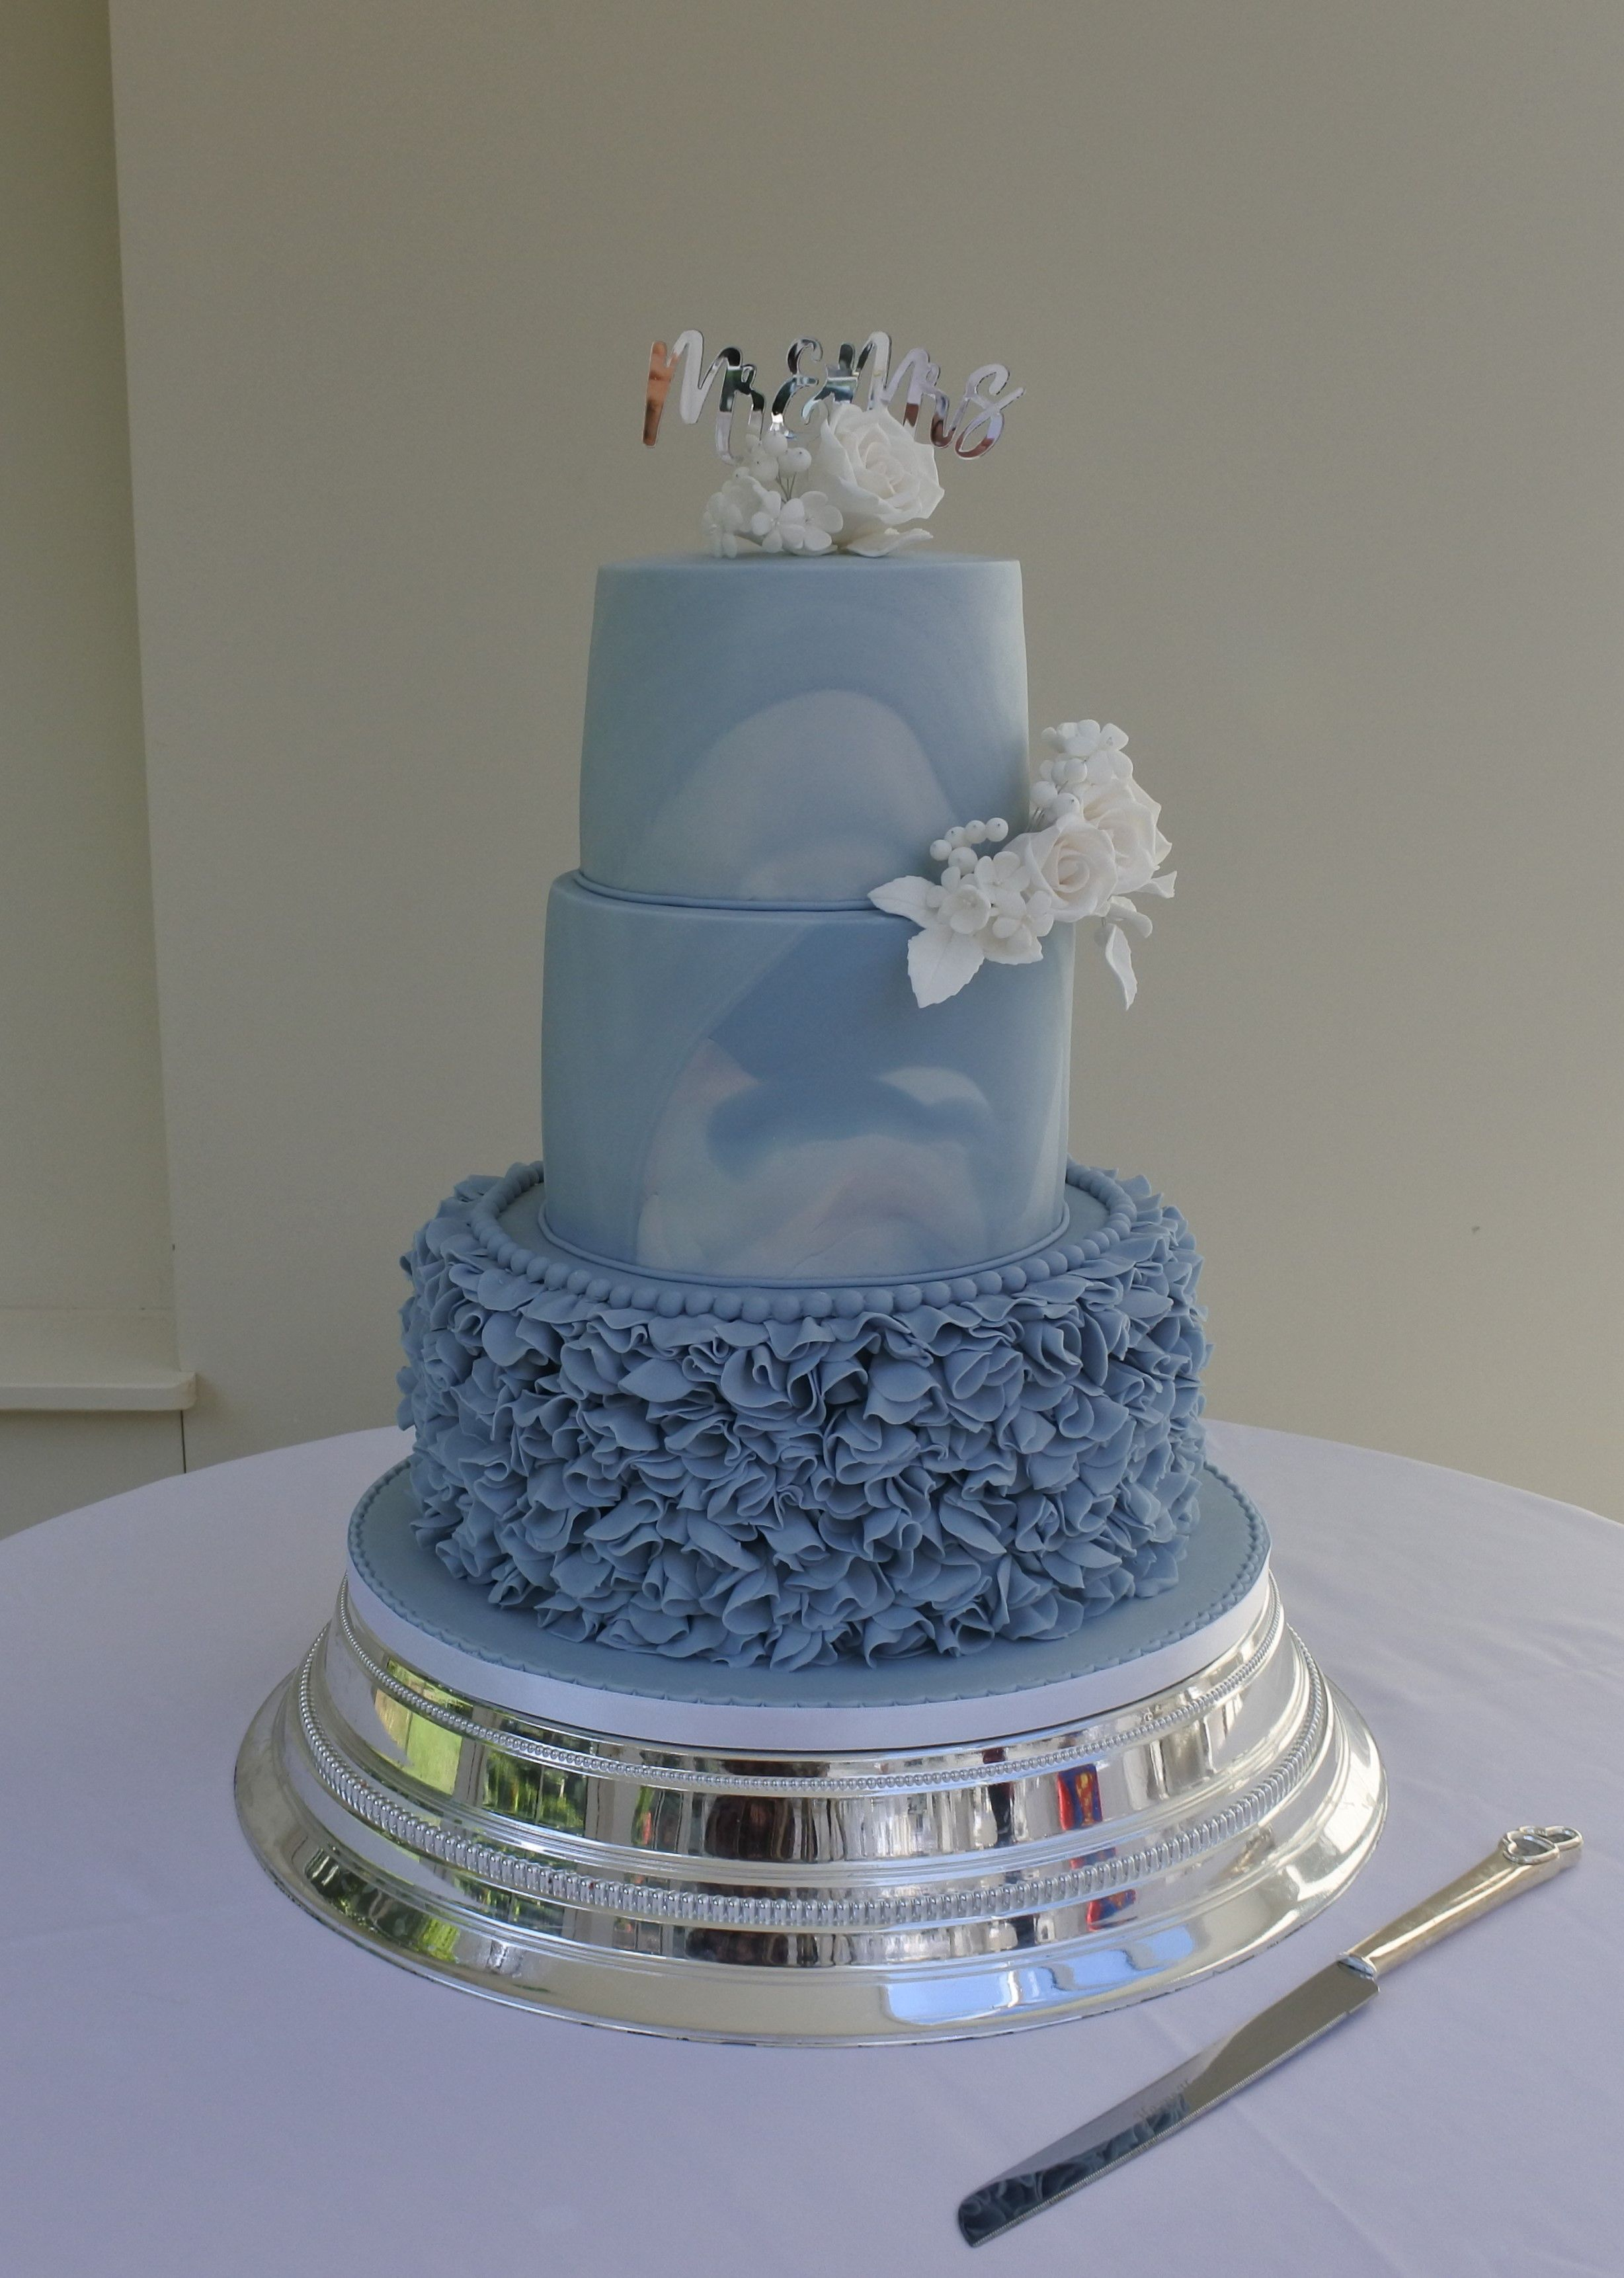 Dusky Blue Ruffles And Marbled Wedding Cake With White Sugar